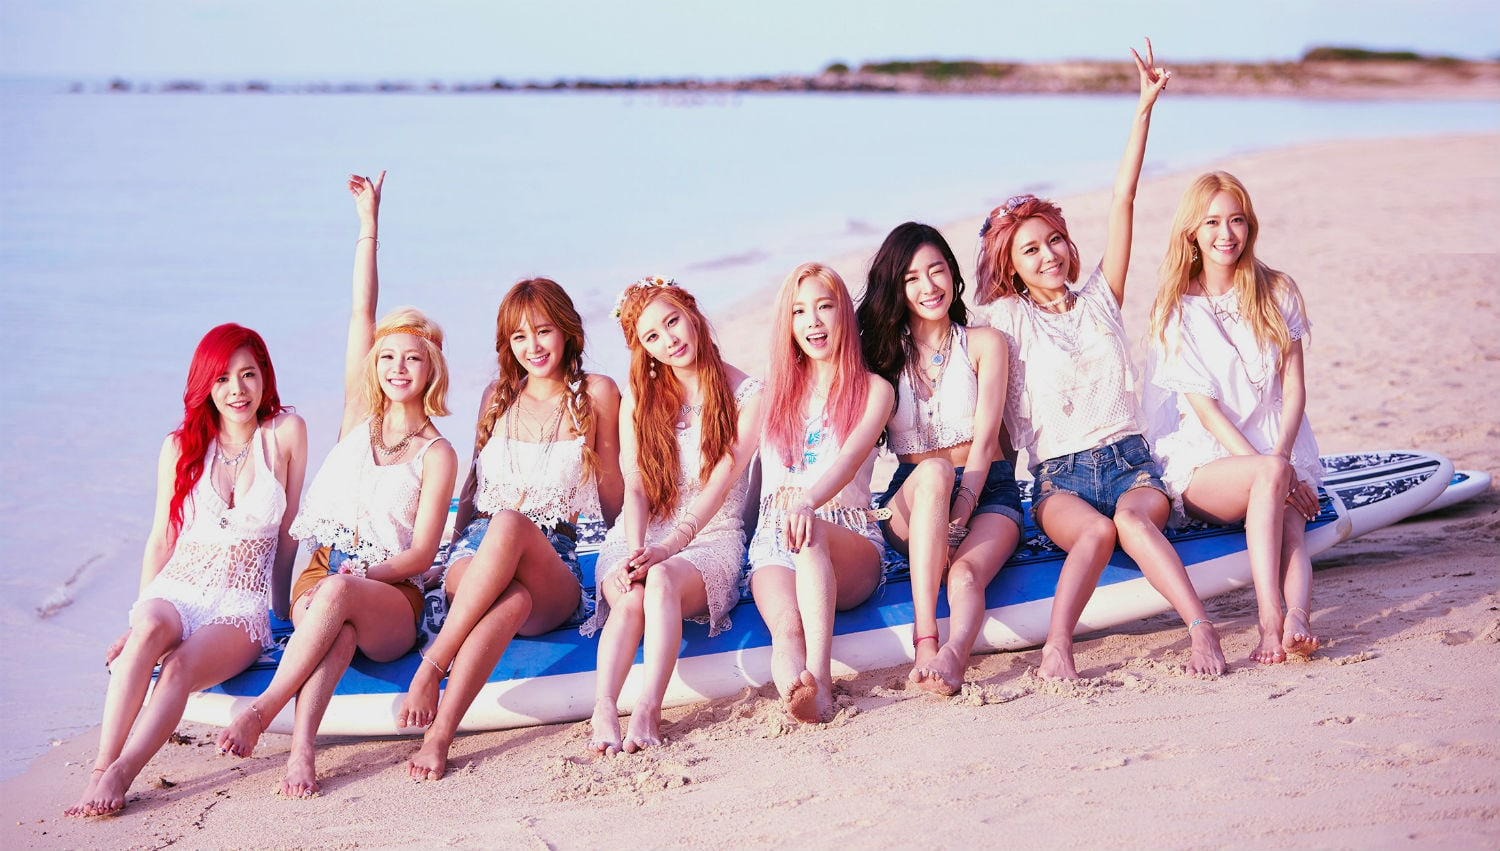 Girls Generation released their fifth album 'Lion Heart' after Jessica Jung's departure.